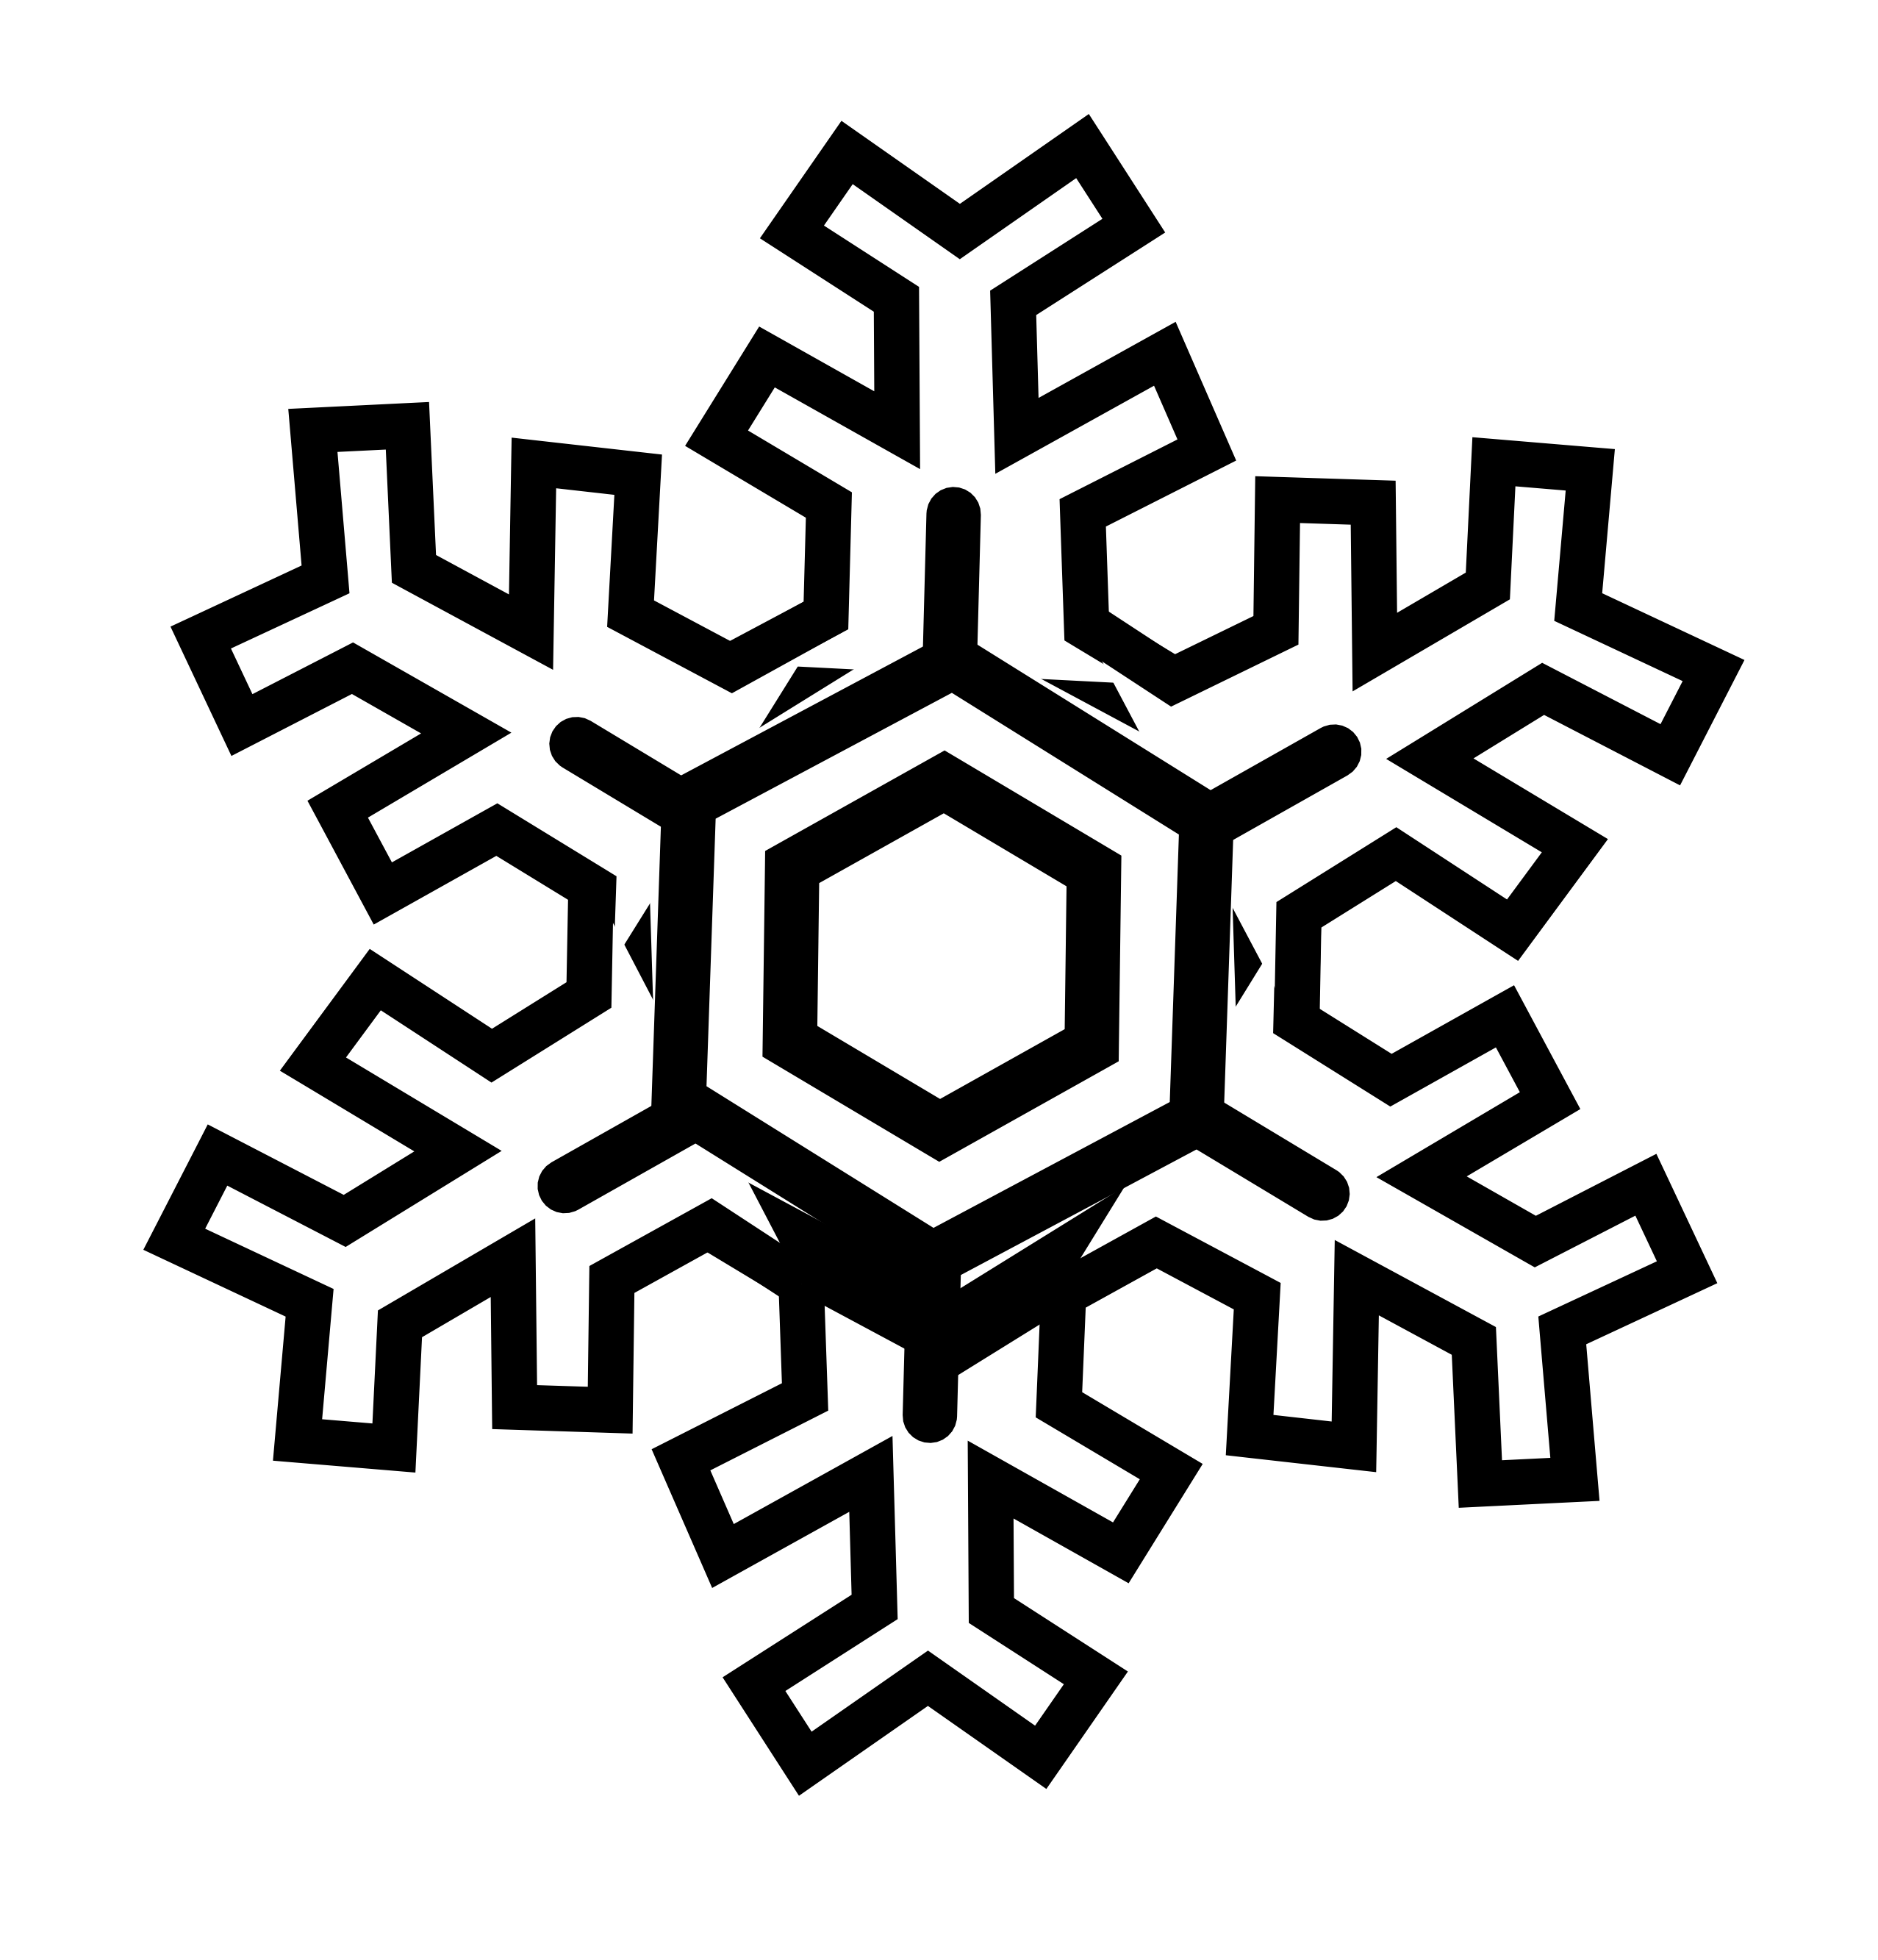 Snowflake clipart black and white disney frozen freeuse library Snowflake Clipart Black And White | Clipart Panda - Free Clipart Images freeuse library